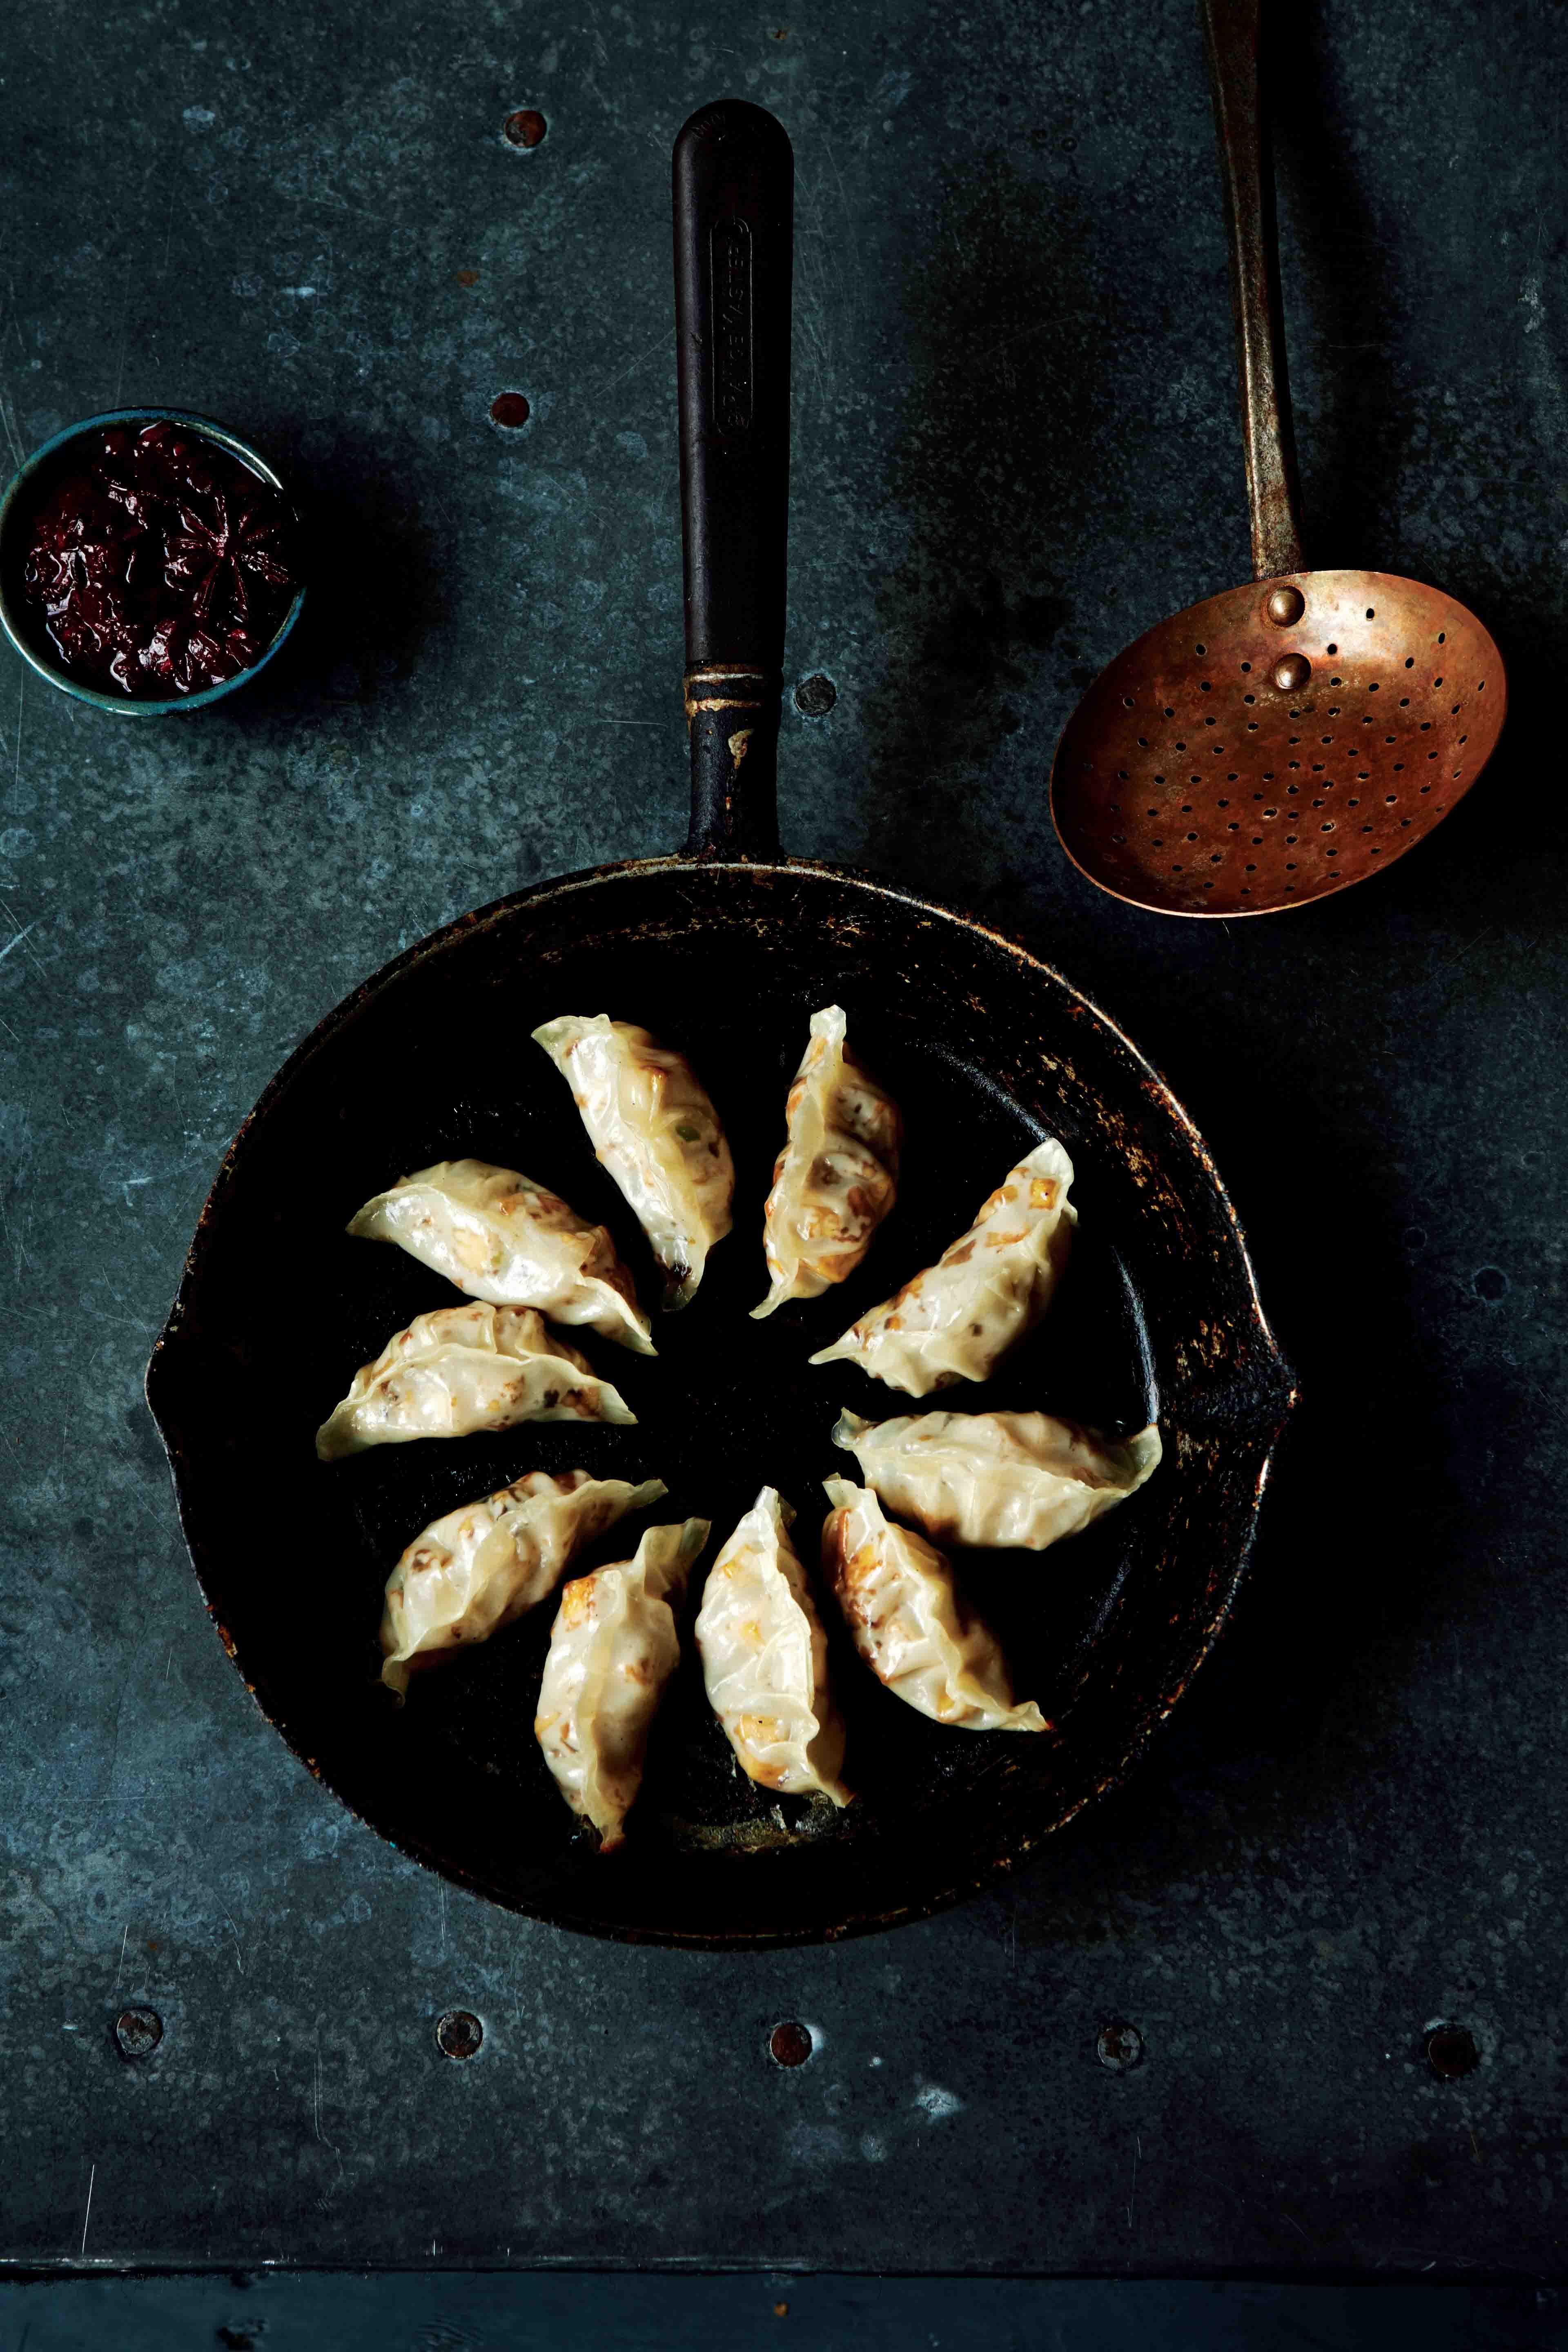 Steamed gyoza with mushroom & tofu filling